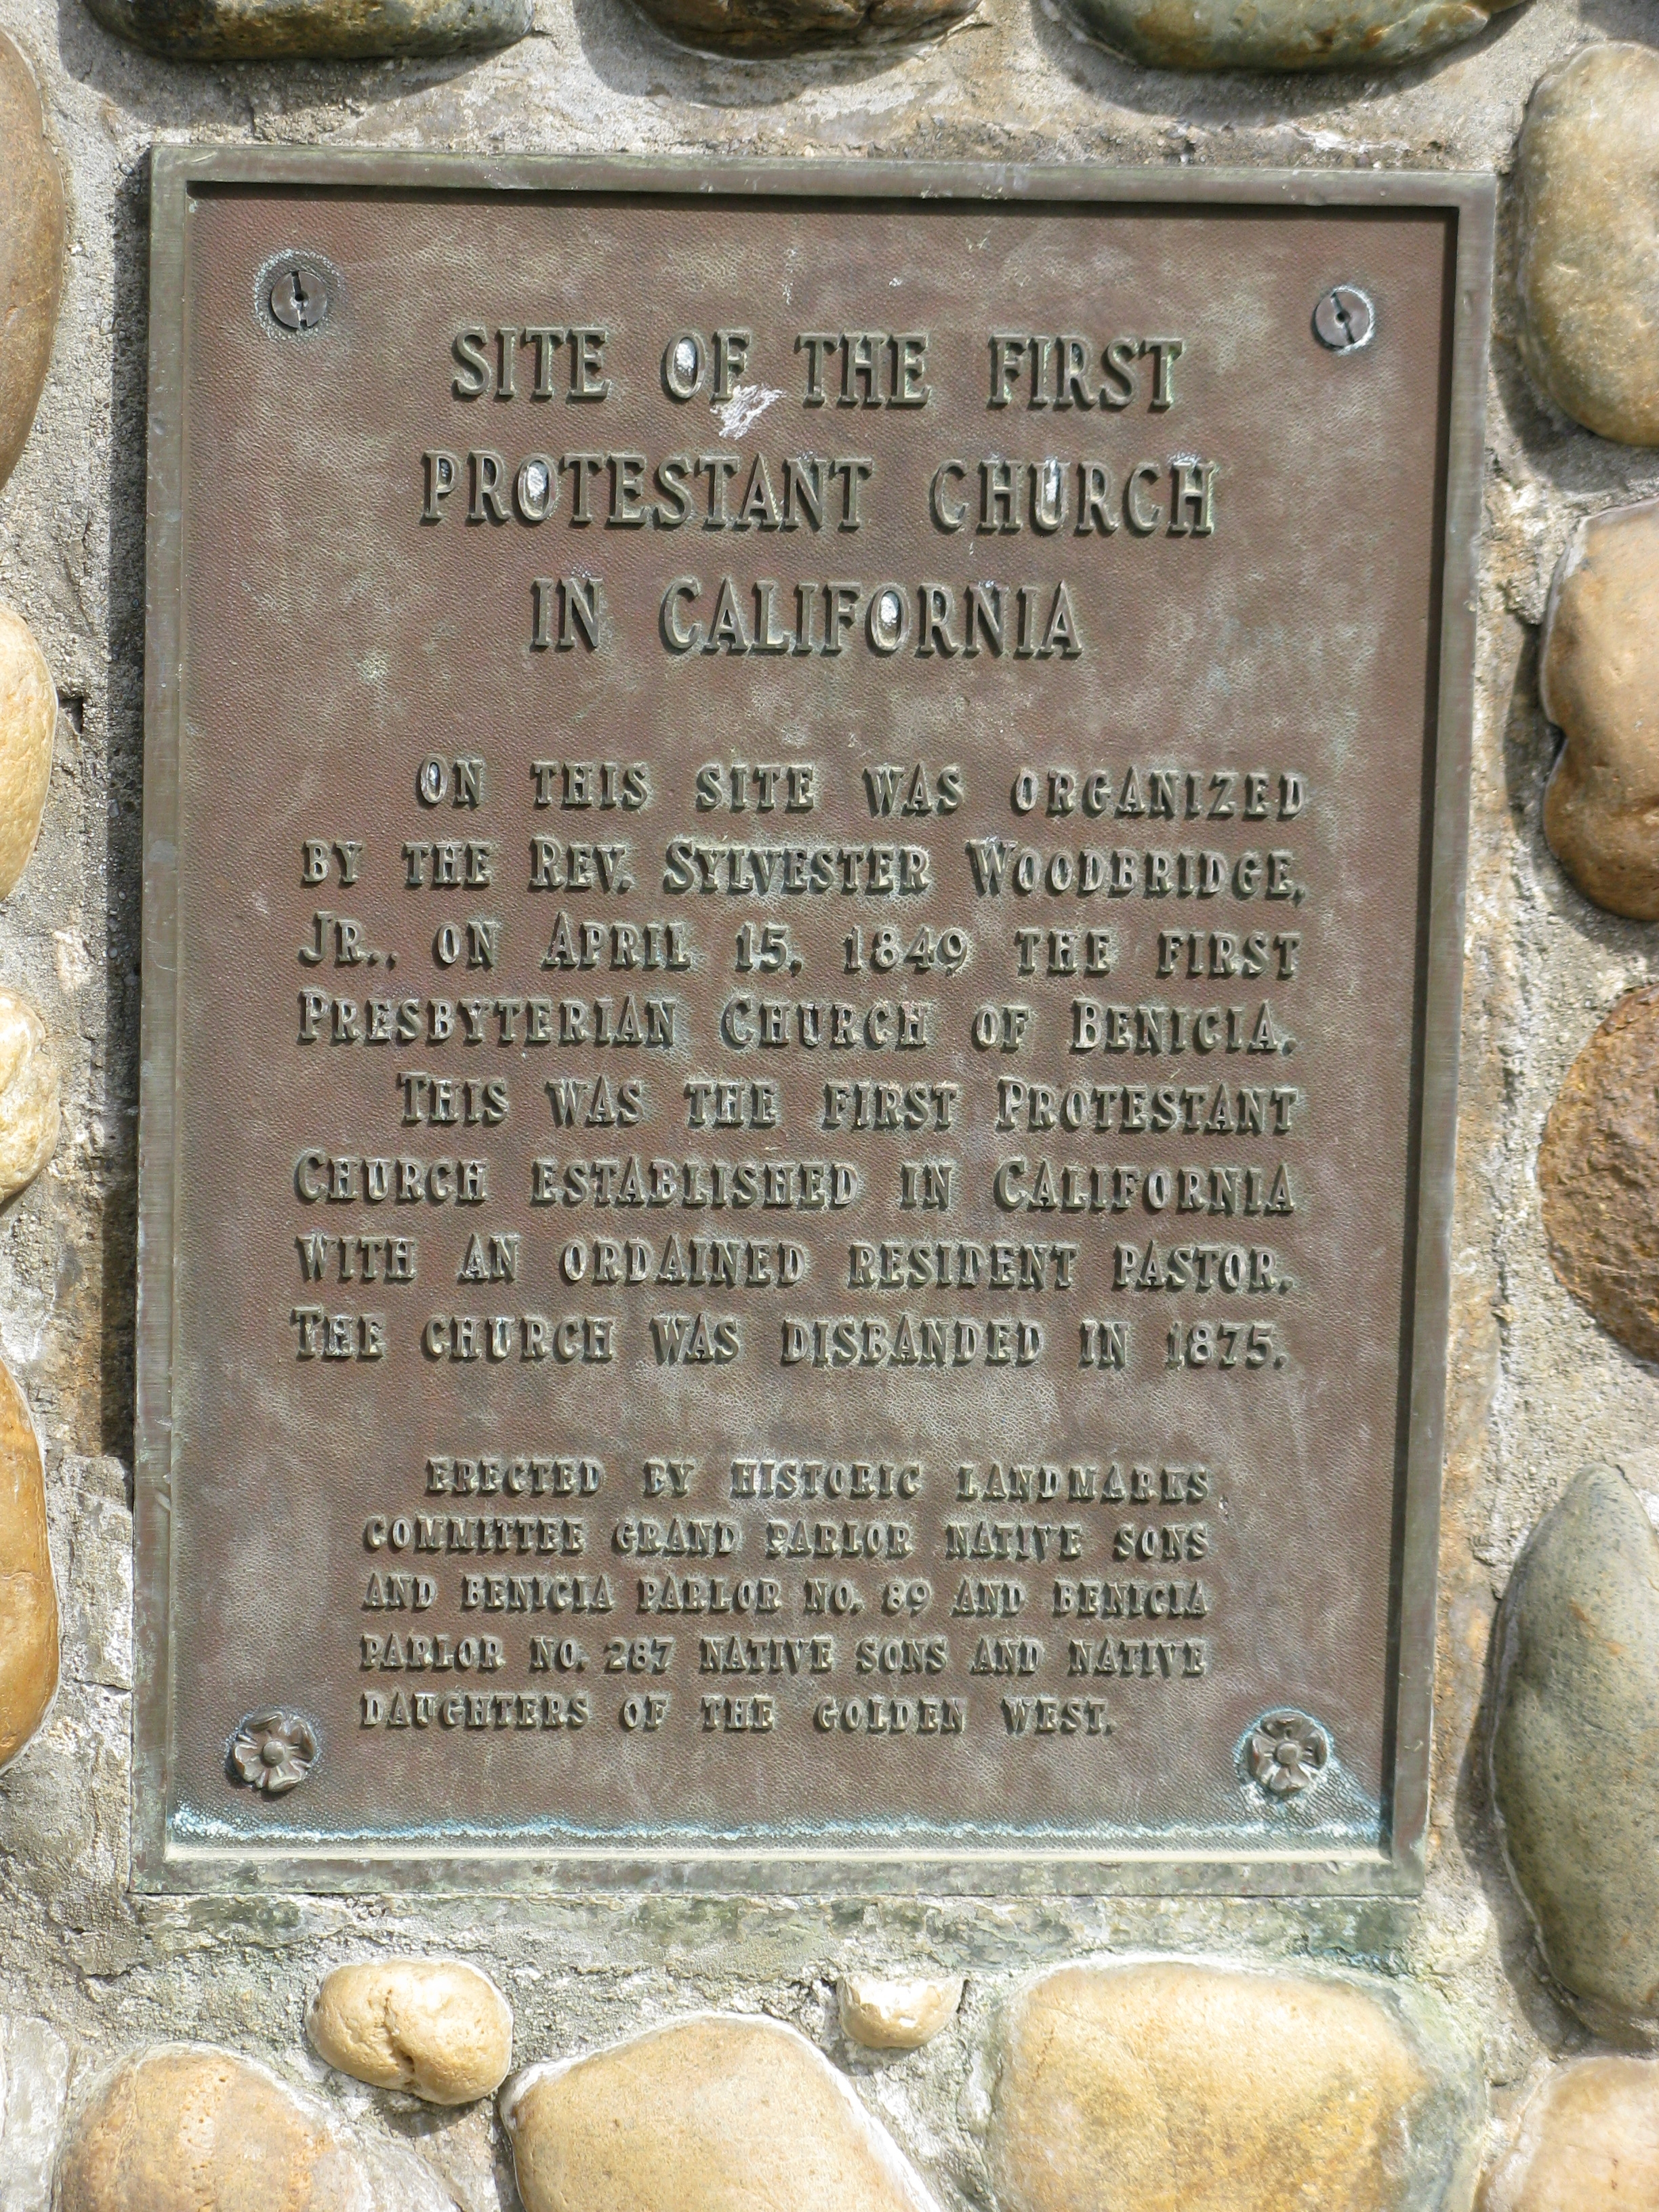 Site of the First Protestant Church in California Marker